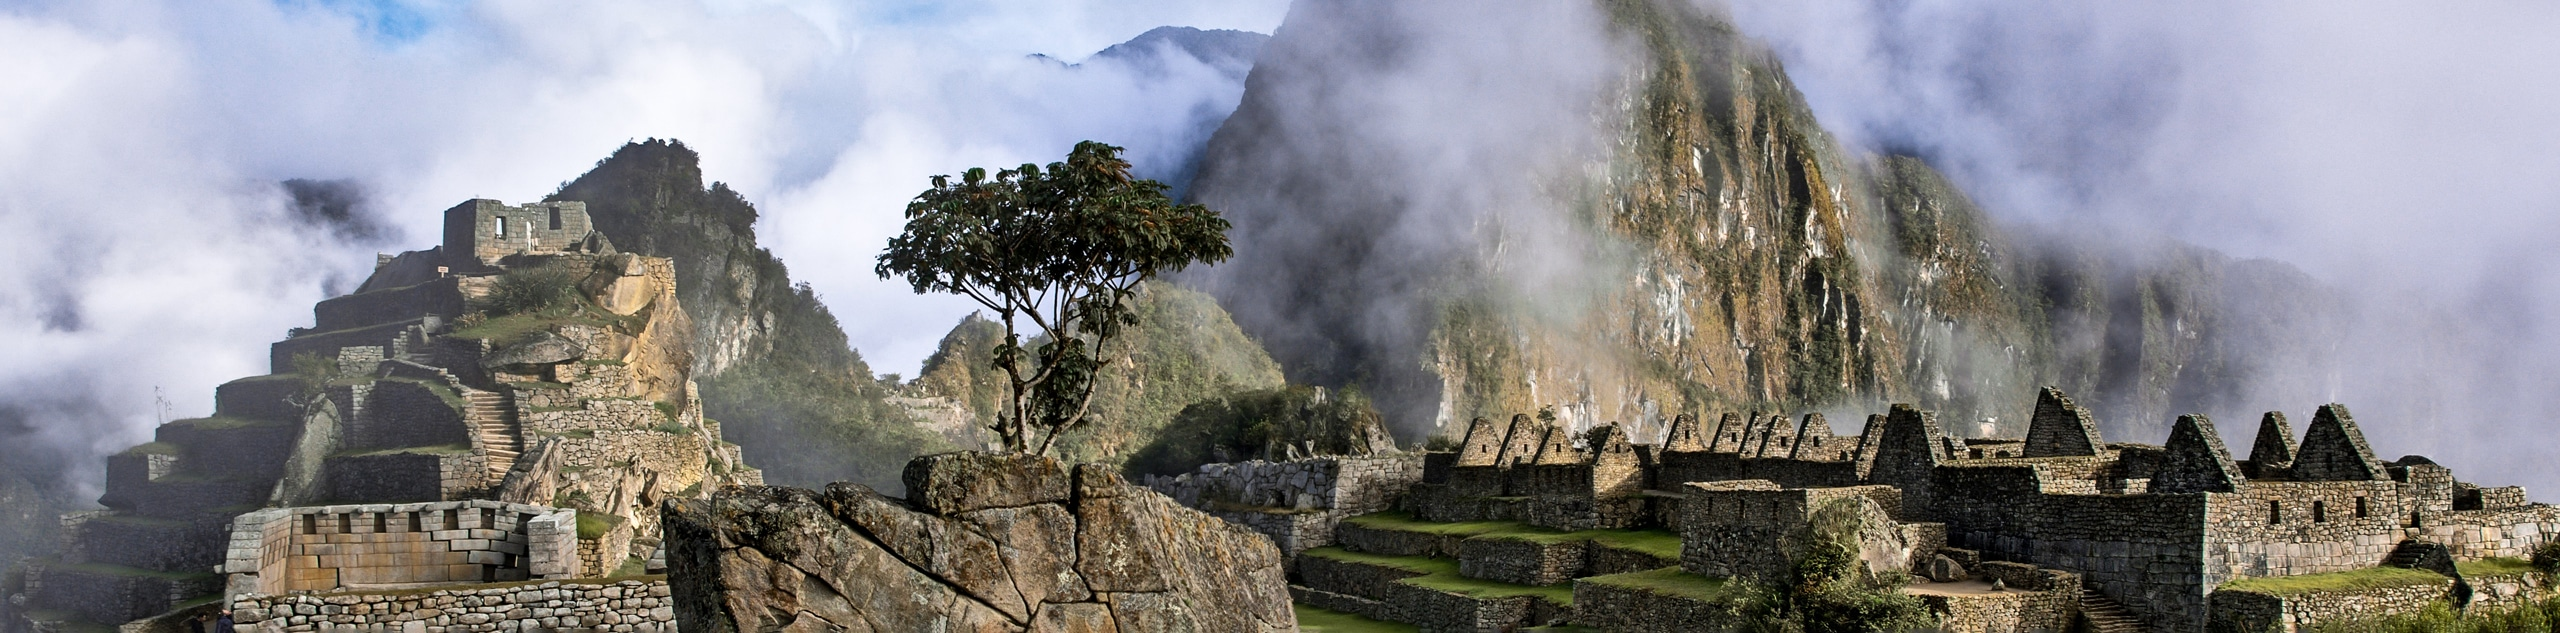 Find Out the Best Time to Visit Machu Picchu and Hike the Inca Trail